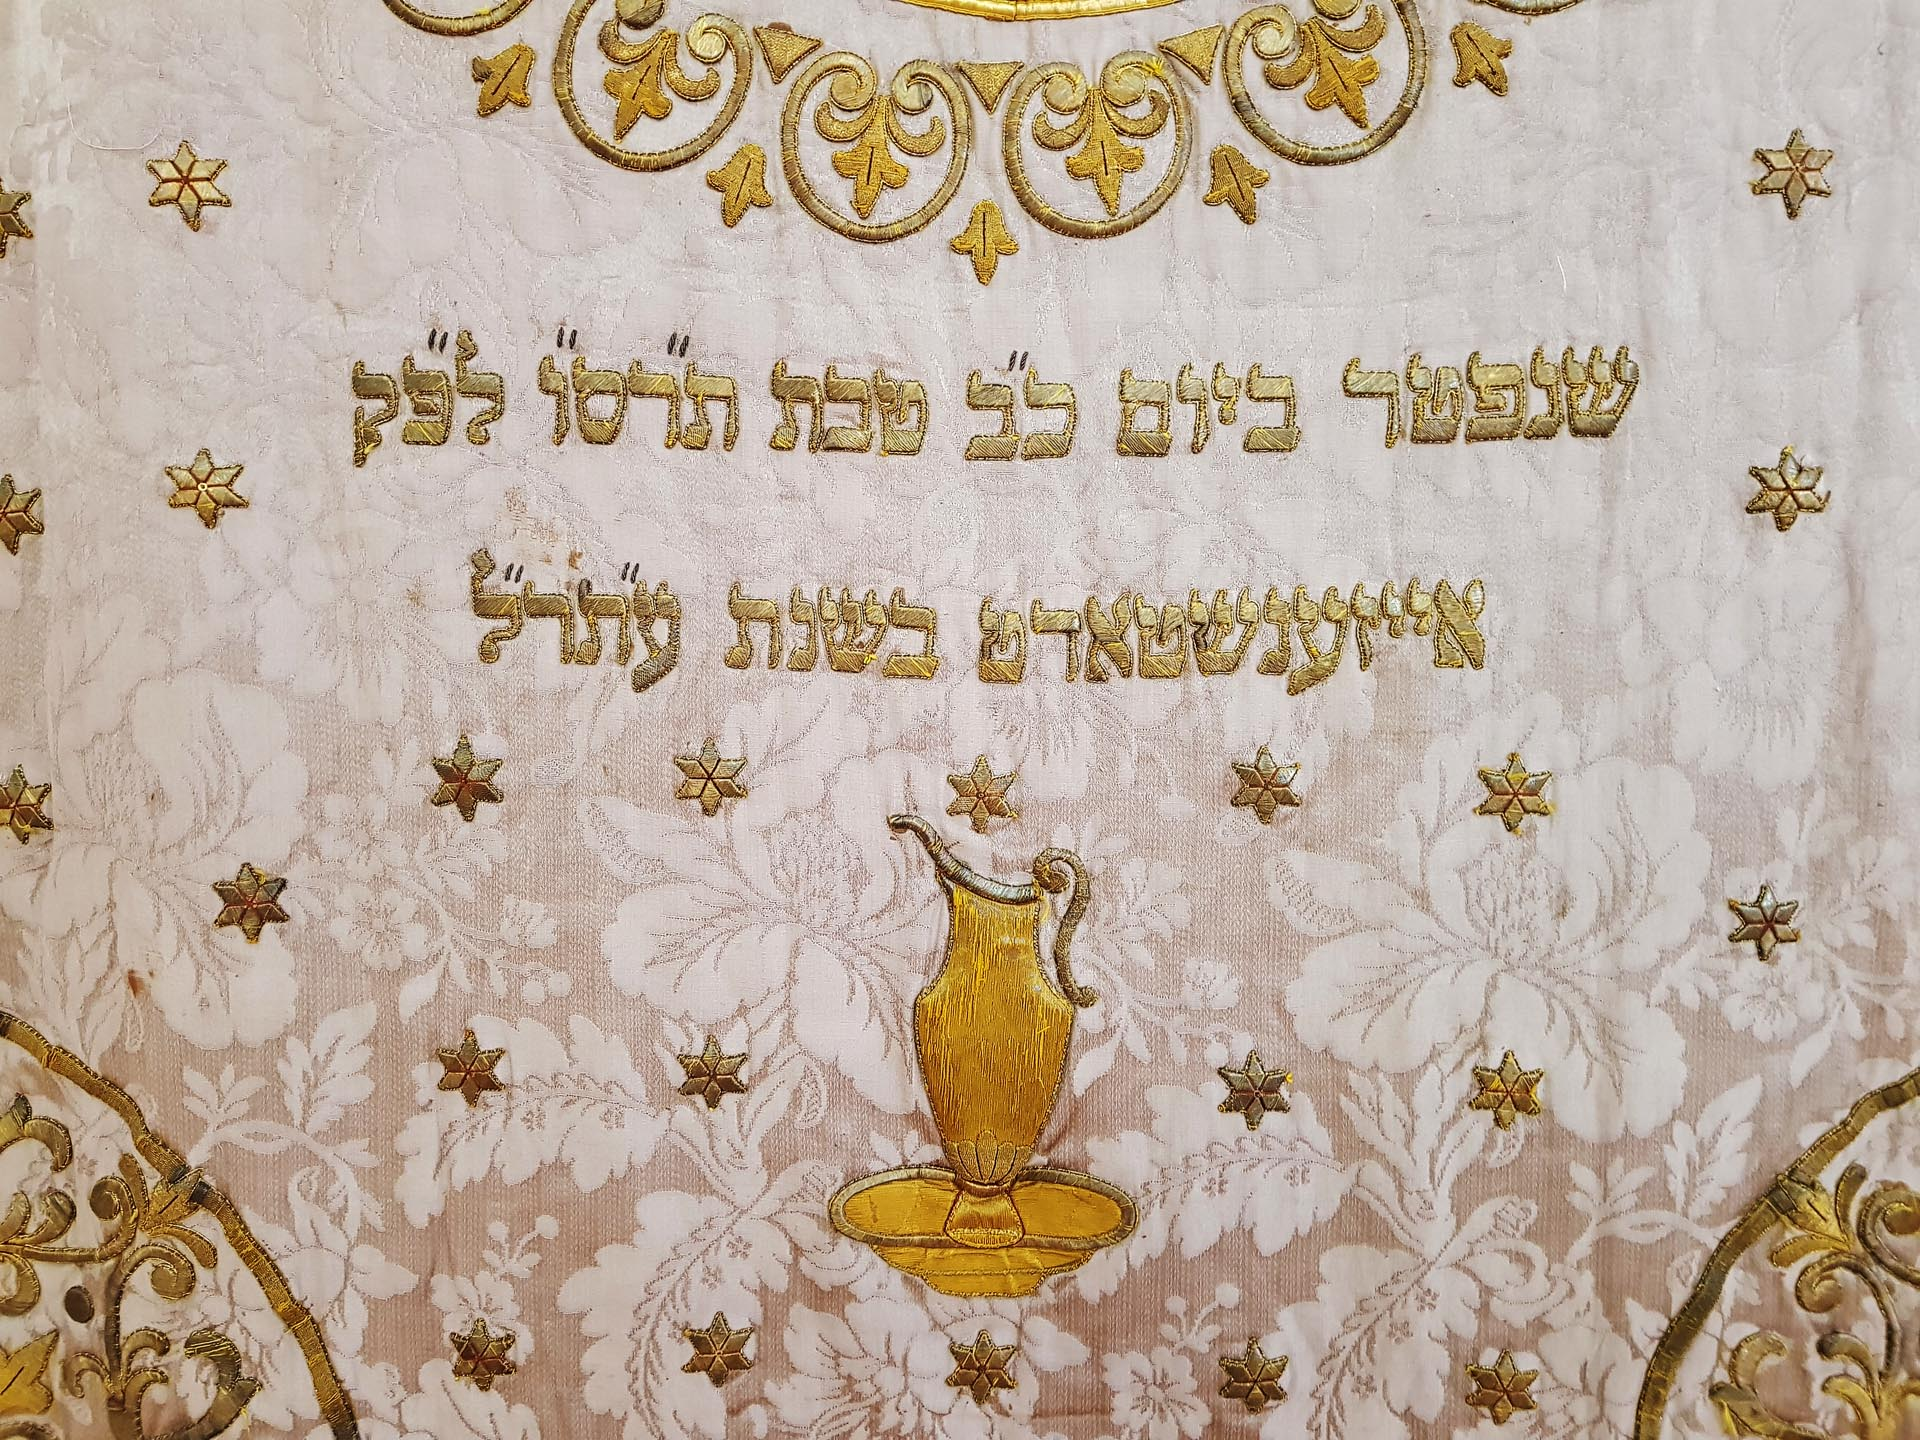 Torah Ark curtain Eisenstadt 1910, Detail under the main text